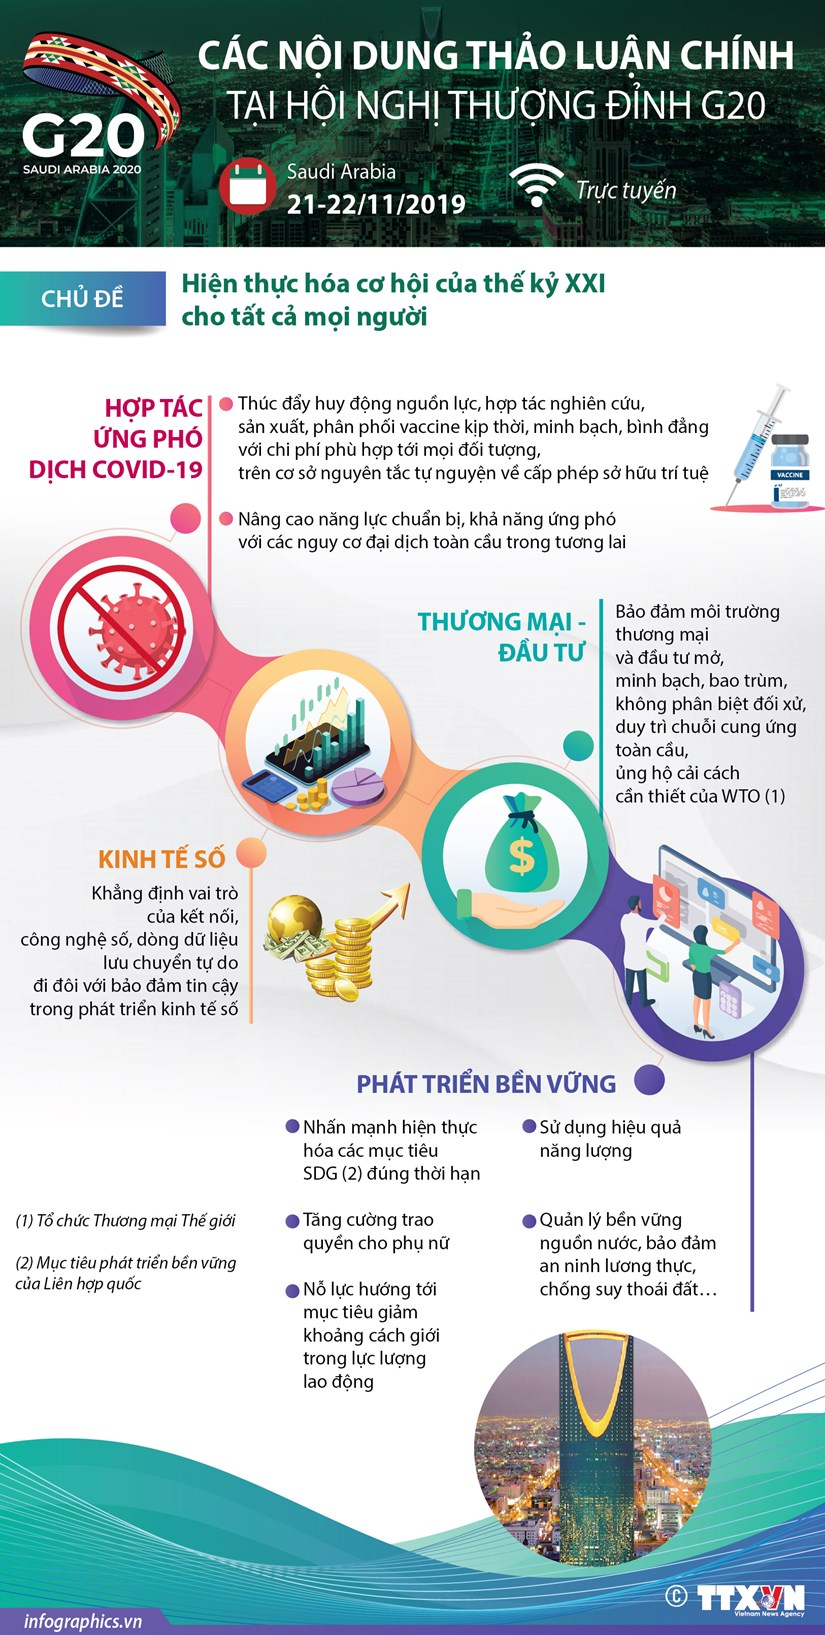 [Infographics] Noi dung thao luan chinh tai Hoi nghi thuong dinh G20 hinh anh 1